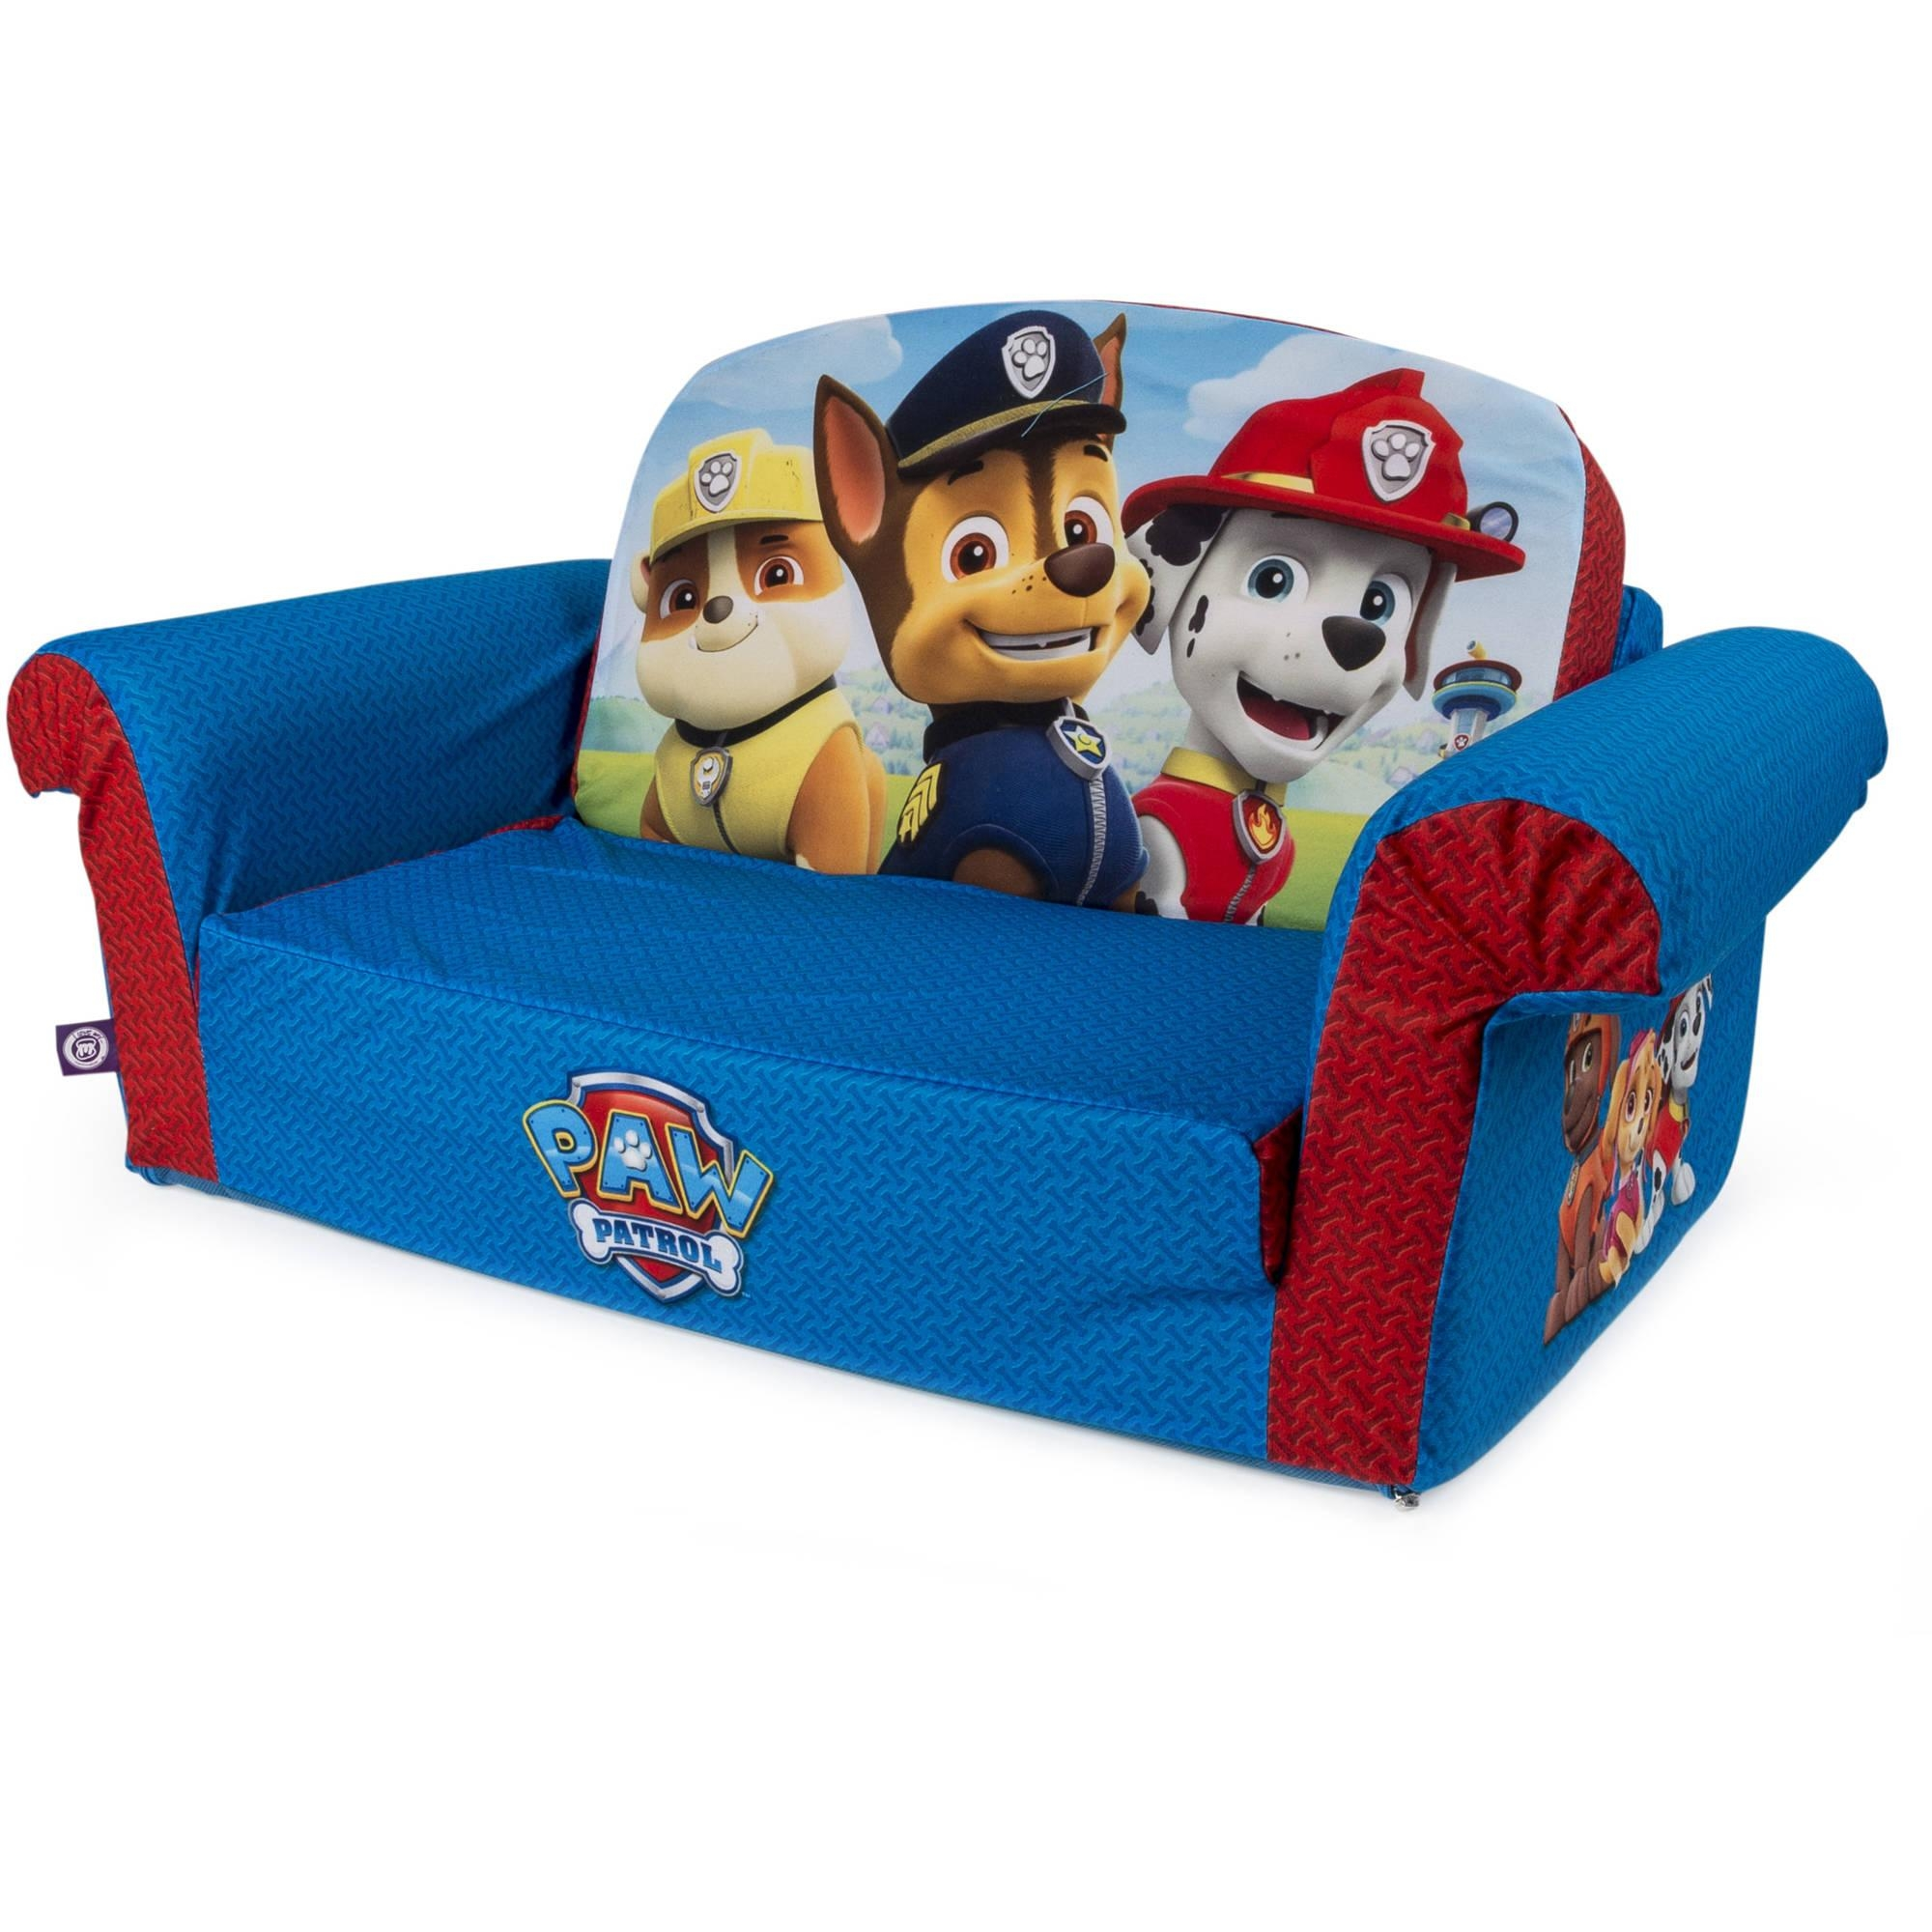 Marshmallow Furniture, Children's 2 In 1 Flip Open Foam Sofa Inside Childrens Sofa Bed Chairs (View 4 of 20)